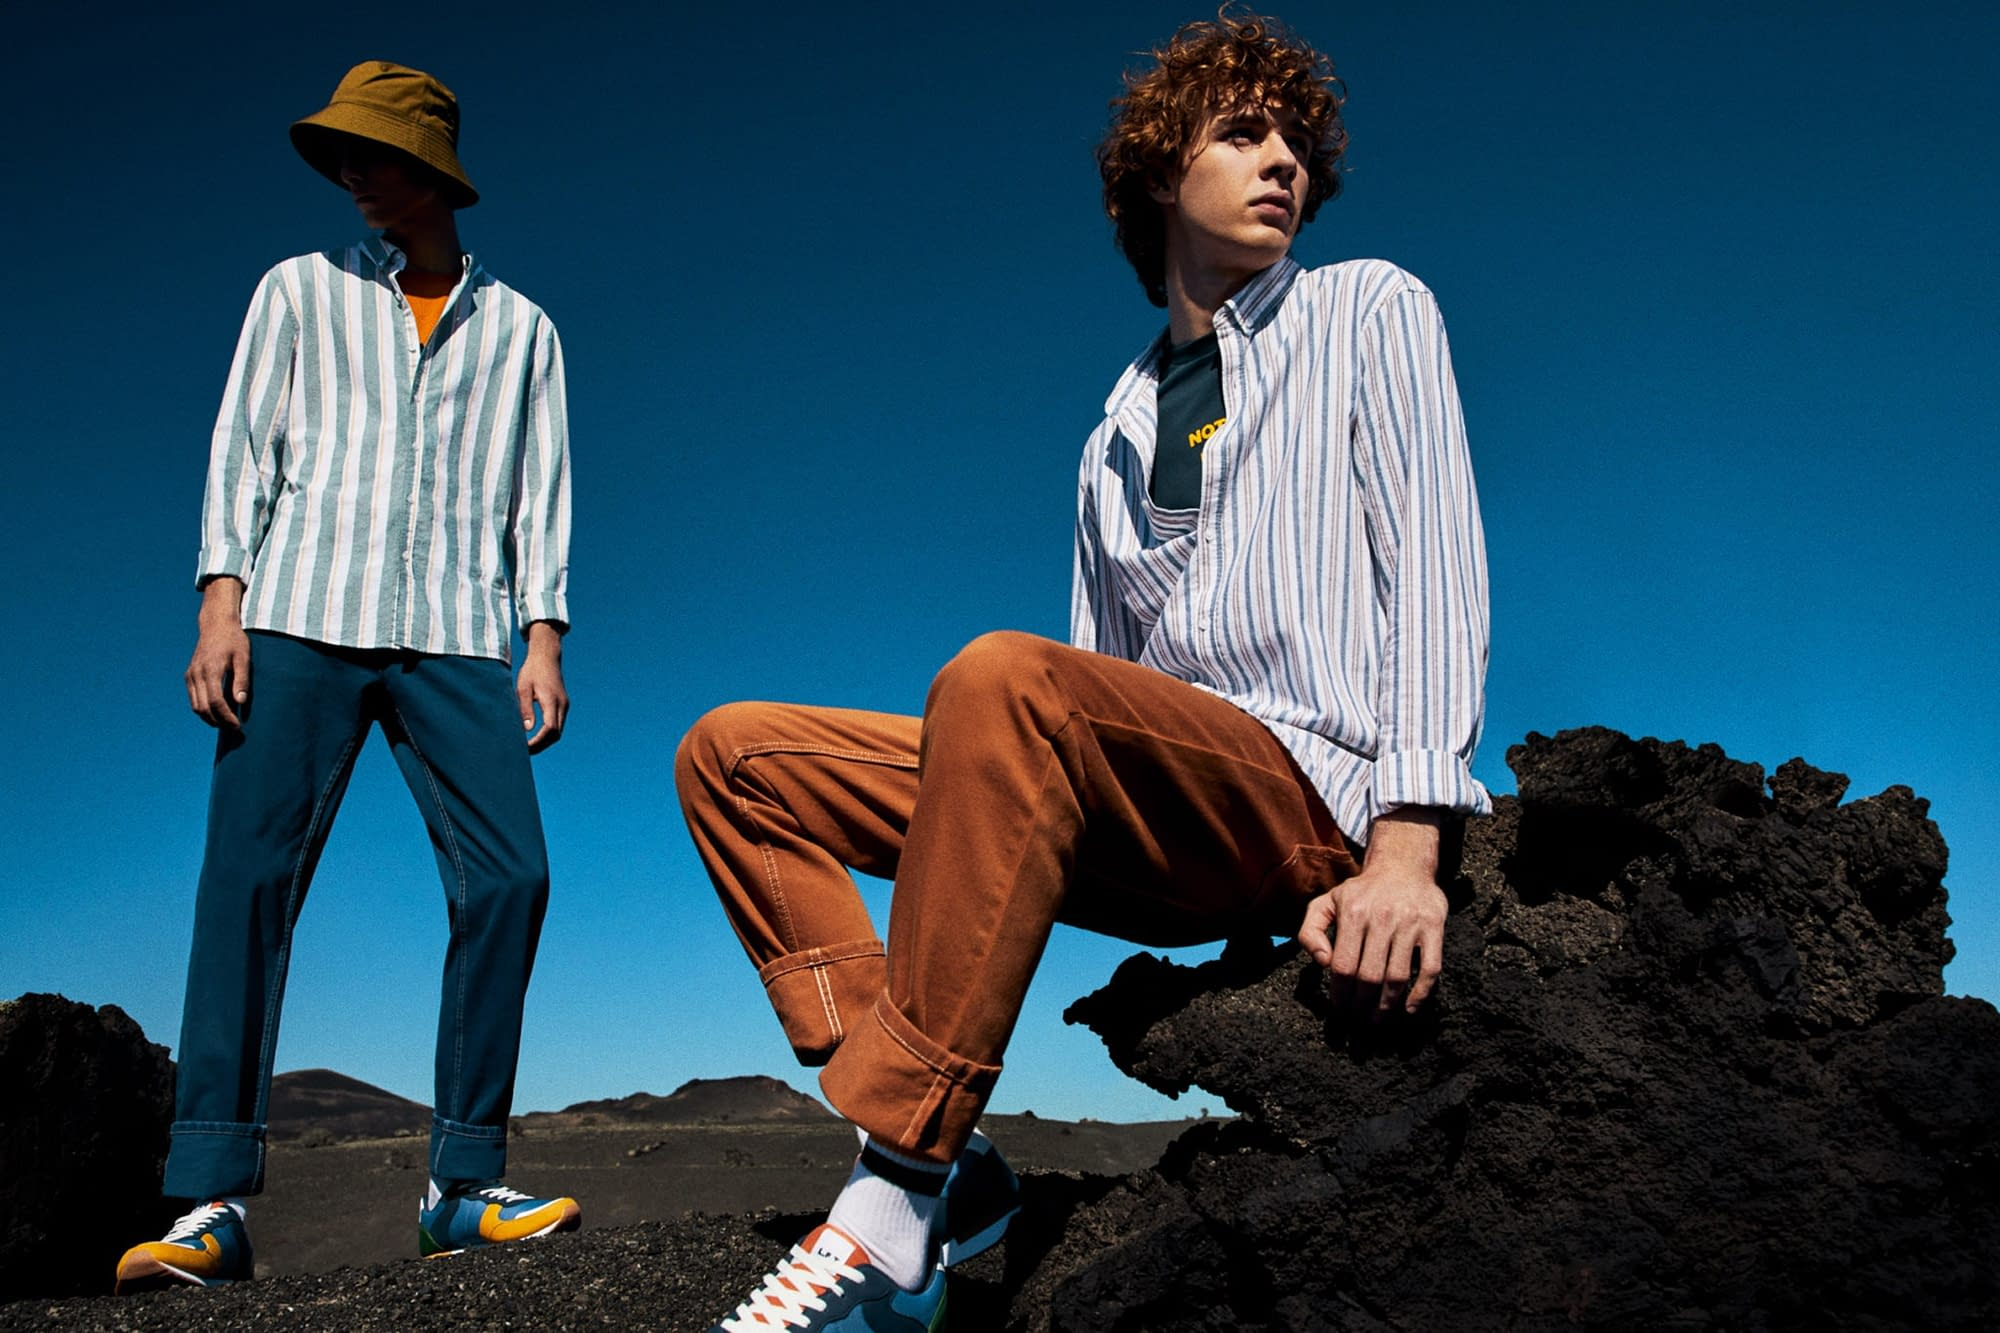 LEFTIES MEN SS19 8G PHOTO BY ENRIC GALCERAN